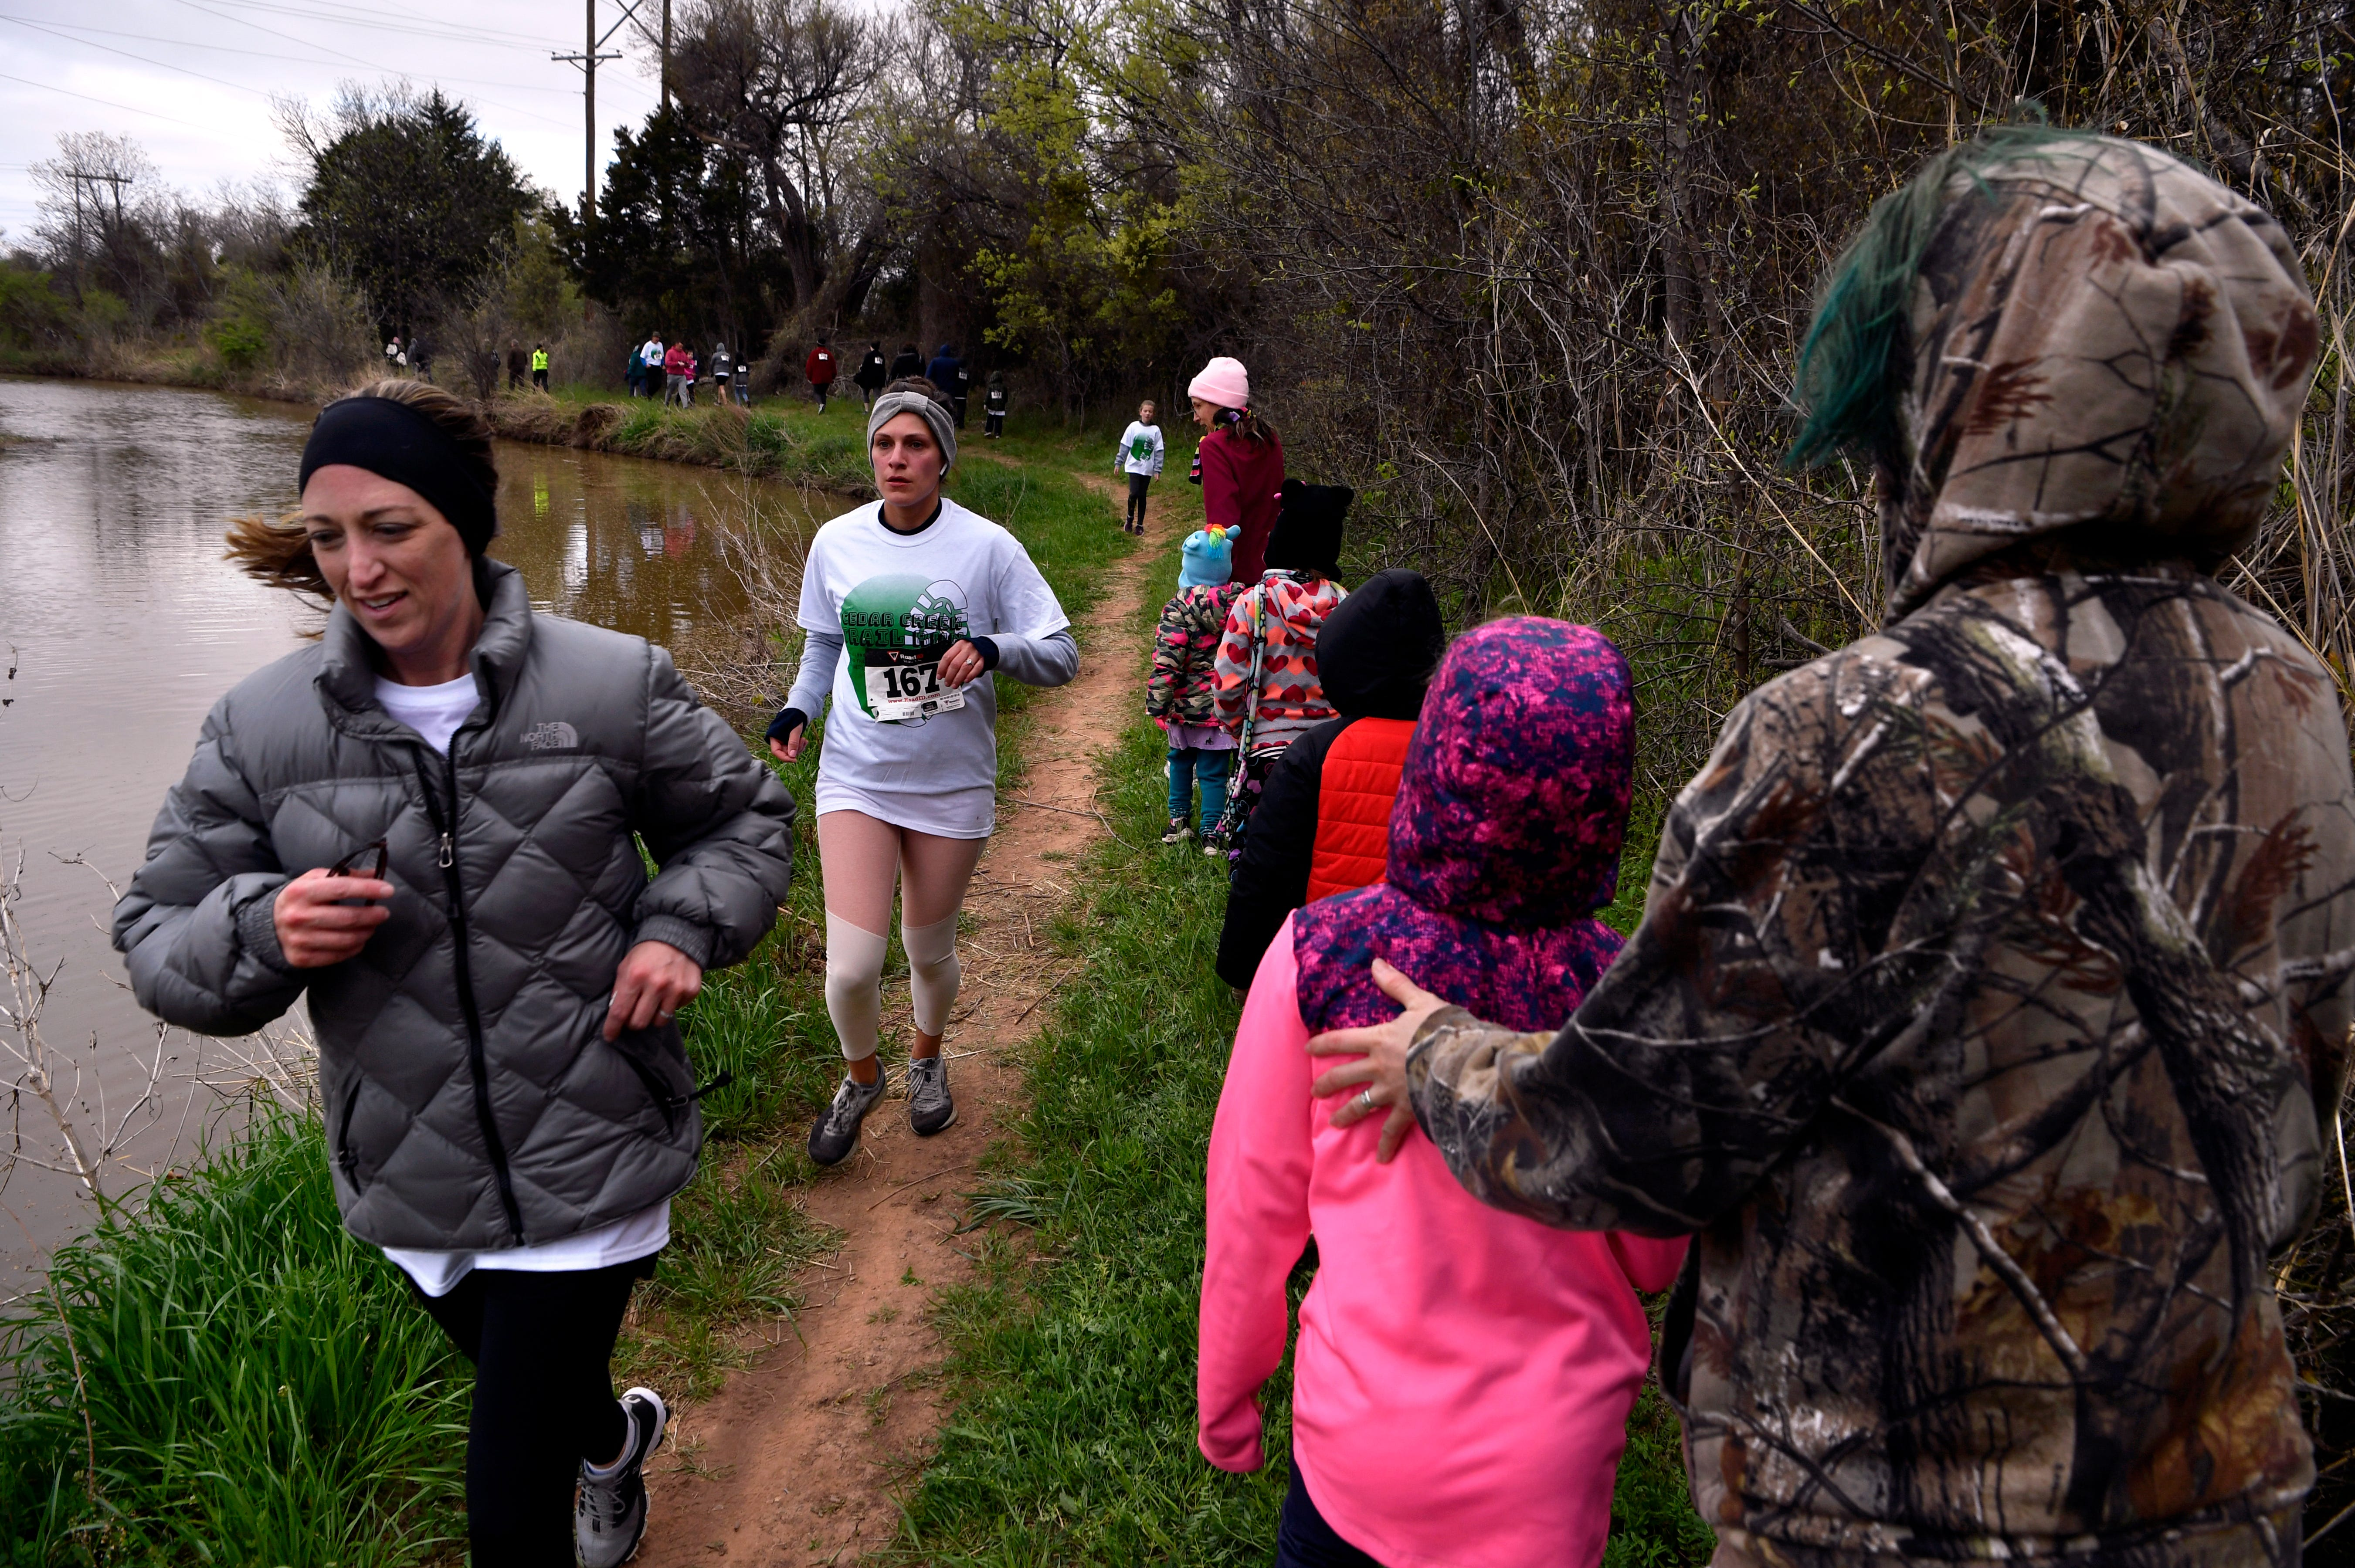 Hikers and some who wished to jog the annual Mayor's Hike pass each other along Cedar Creek Saturday. Water was flowing in the creek, Randy Barnett of the Cedar Creek Waterway said they turn on the effluent water for the hike, which drains into Lake Fort Phantom Hill.